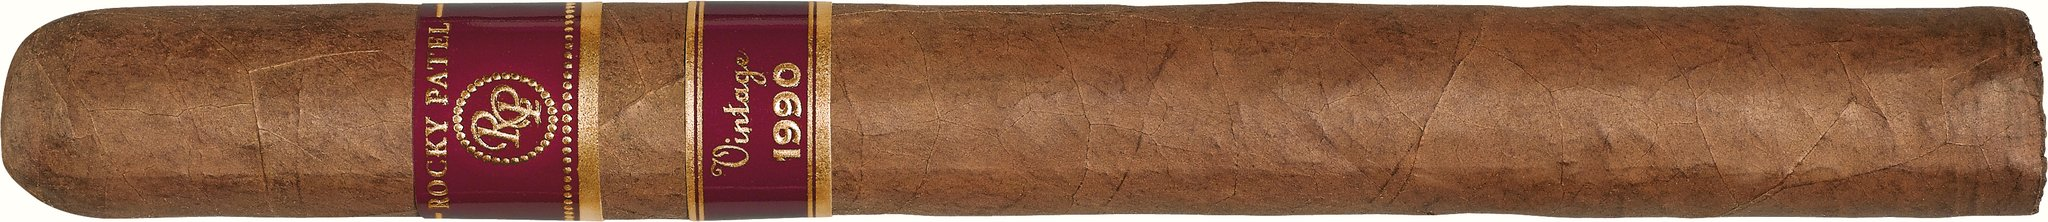 Rocky Patel Vintage Signature 1990 Churchill Glas Tube